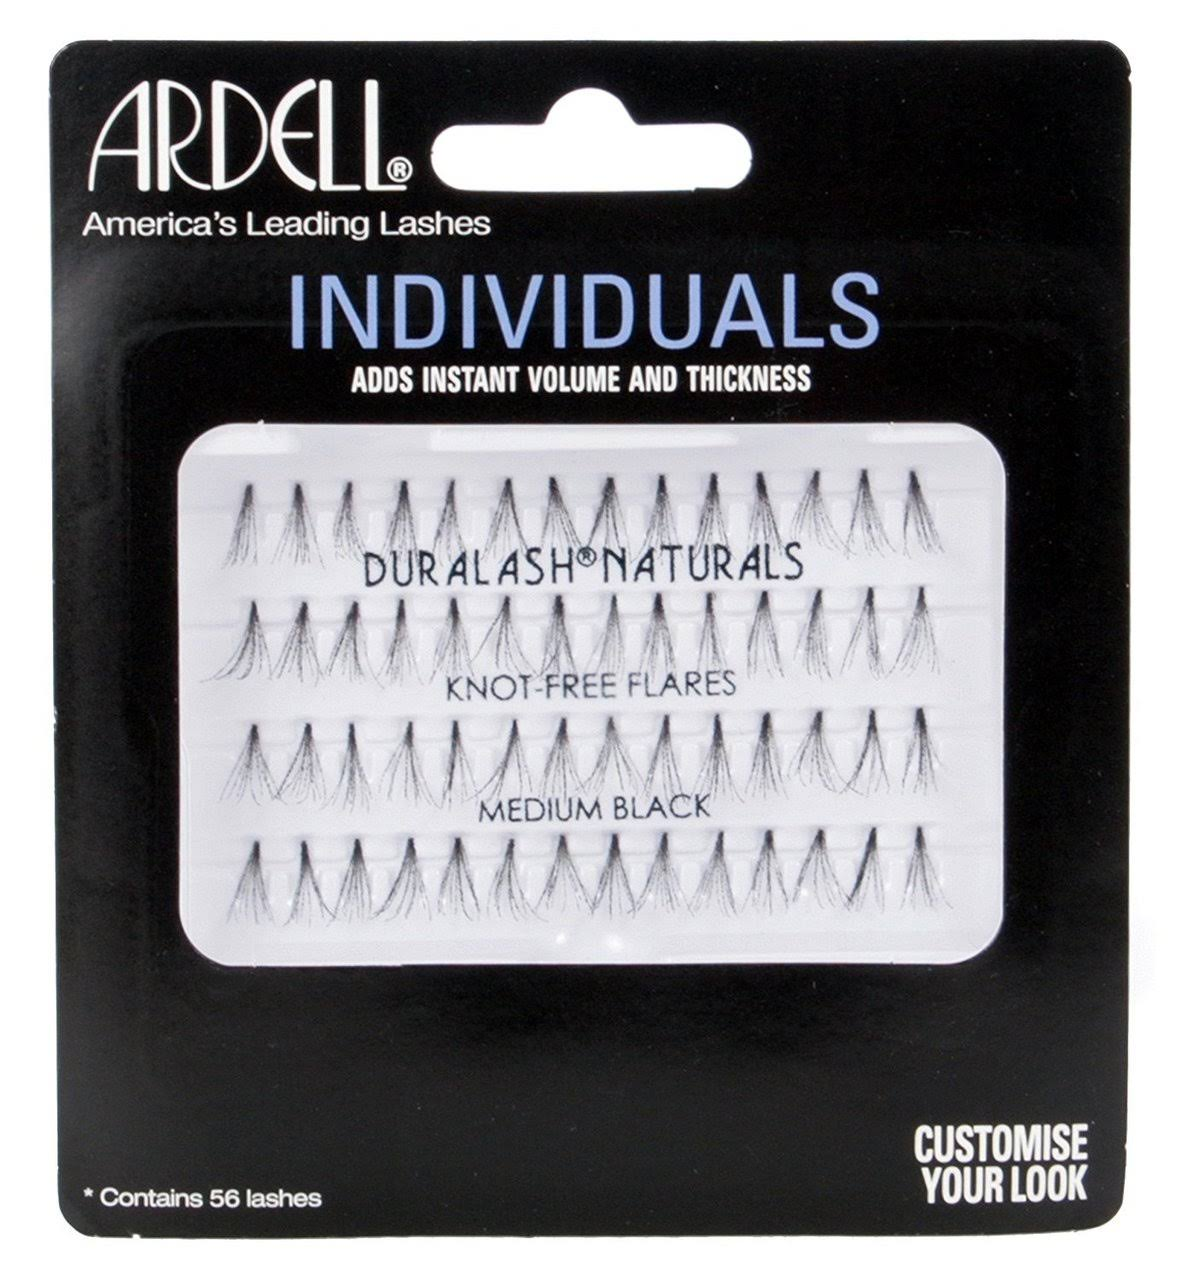 Ardell Individuals Lashes - Medium, Black, 56 Lashes